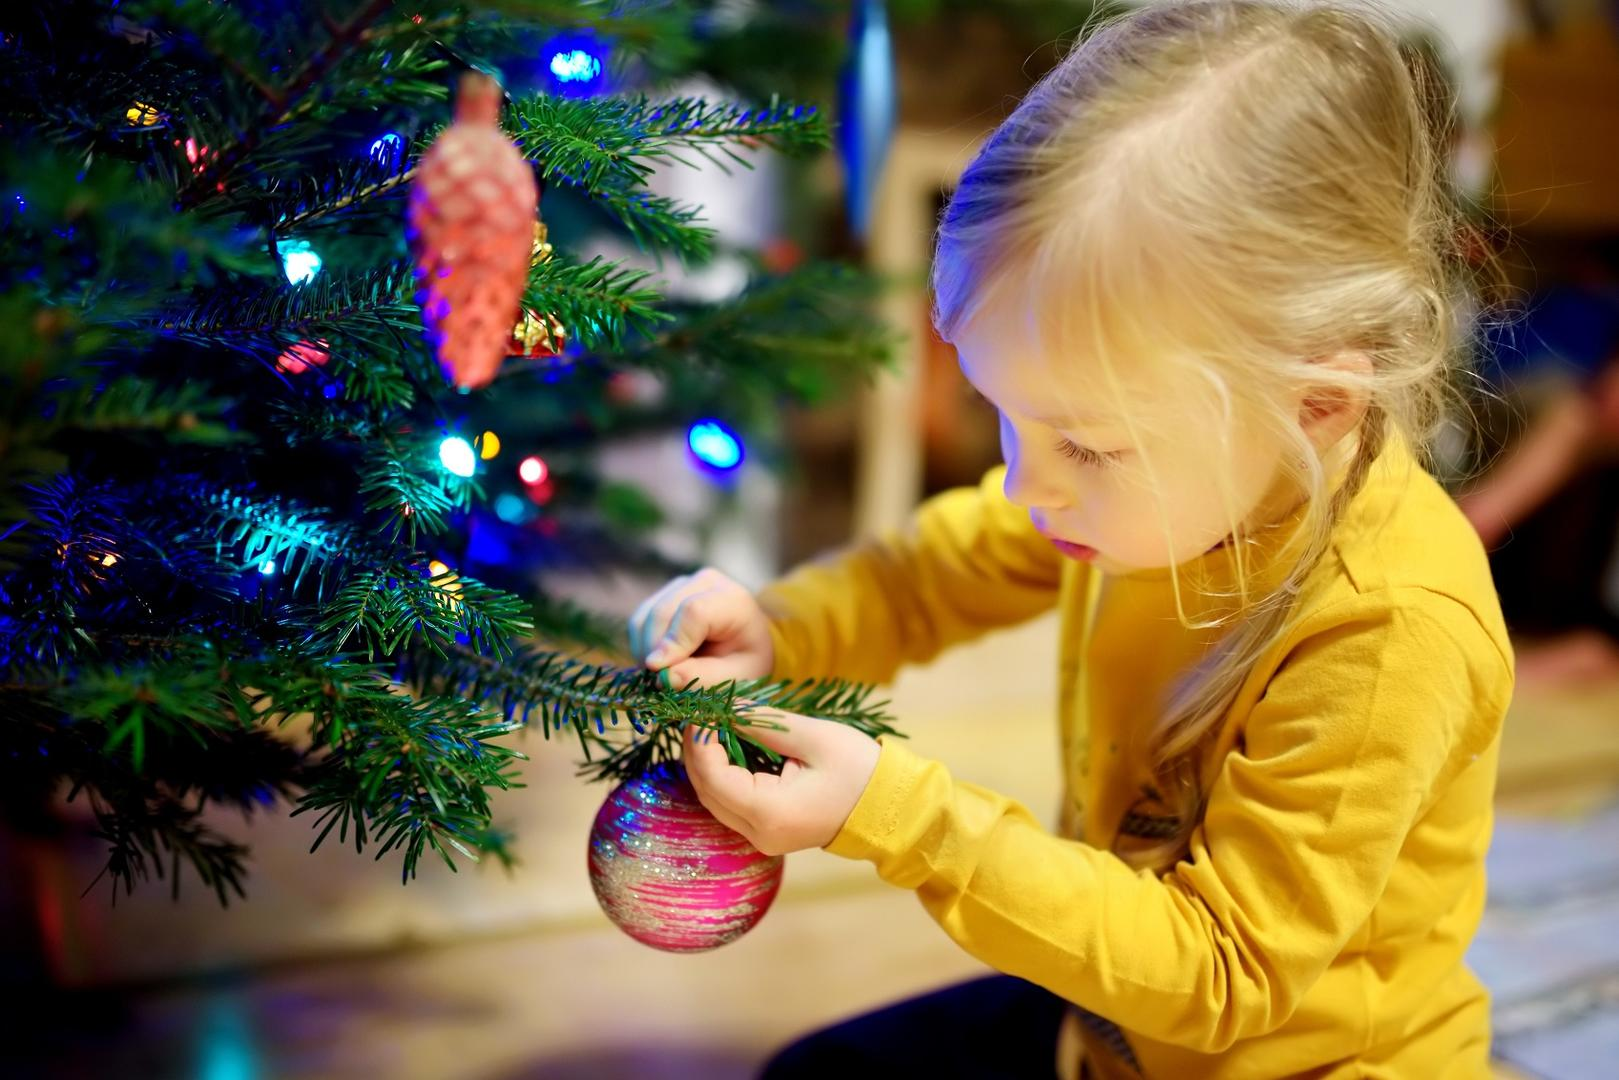 Little girl by Christmas tree